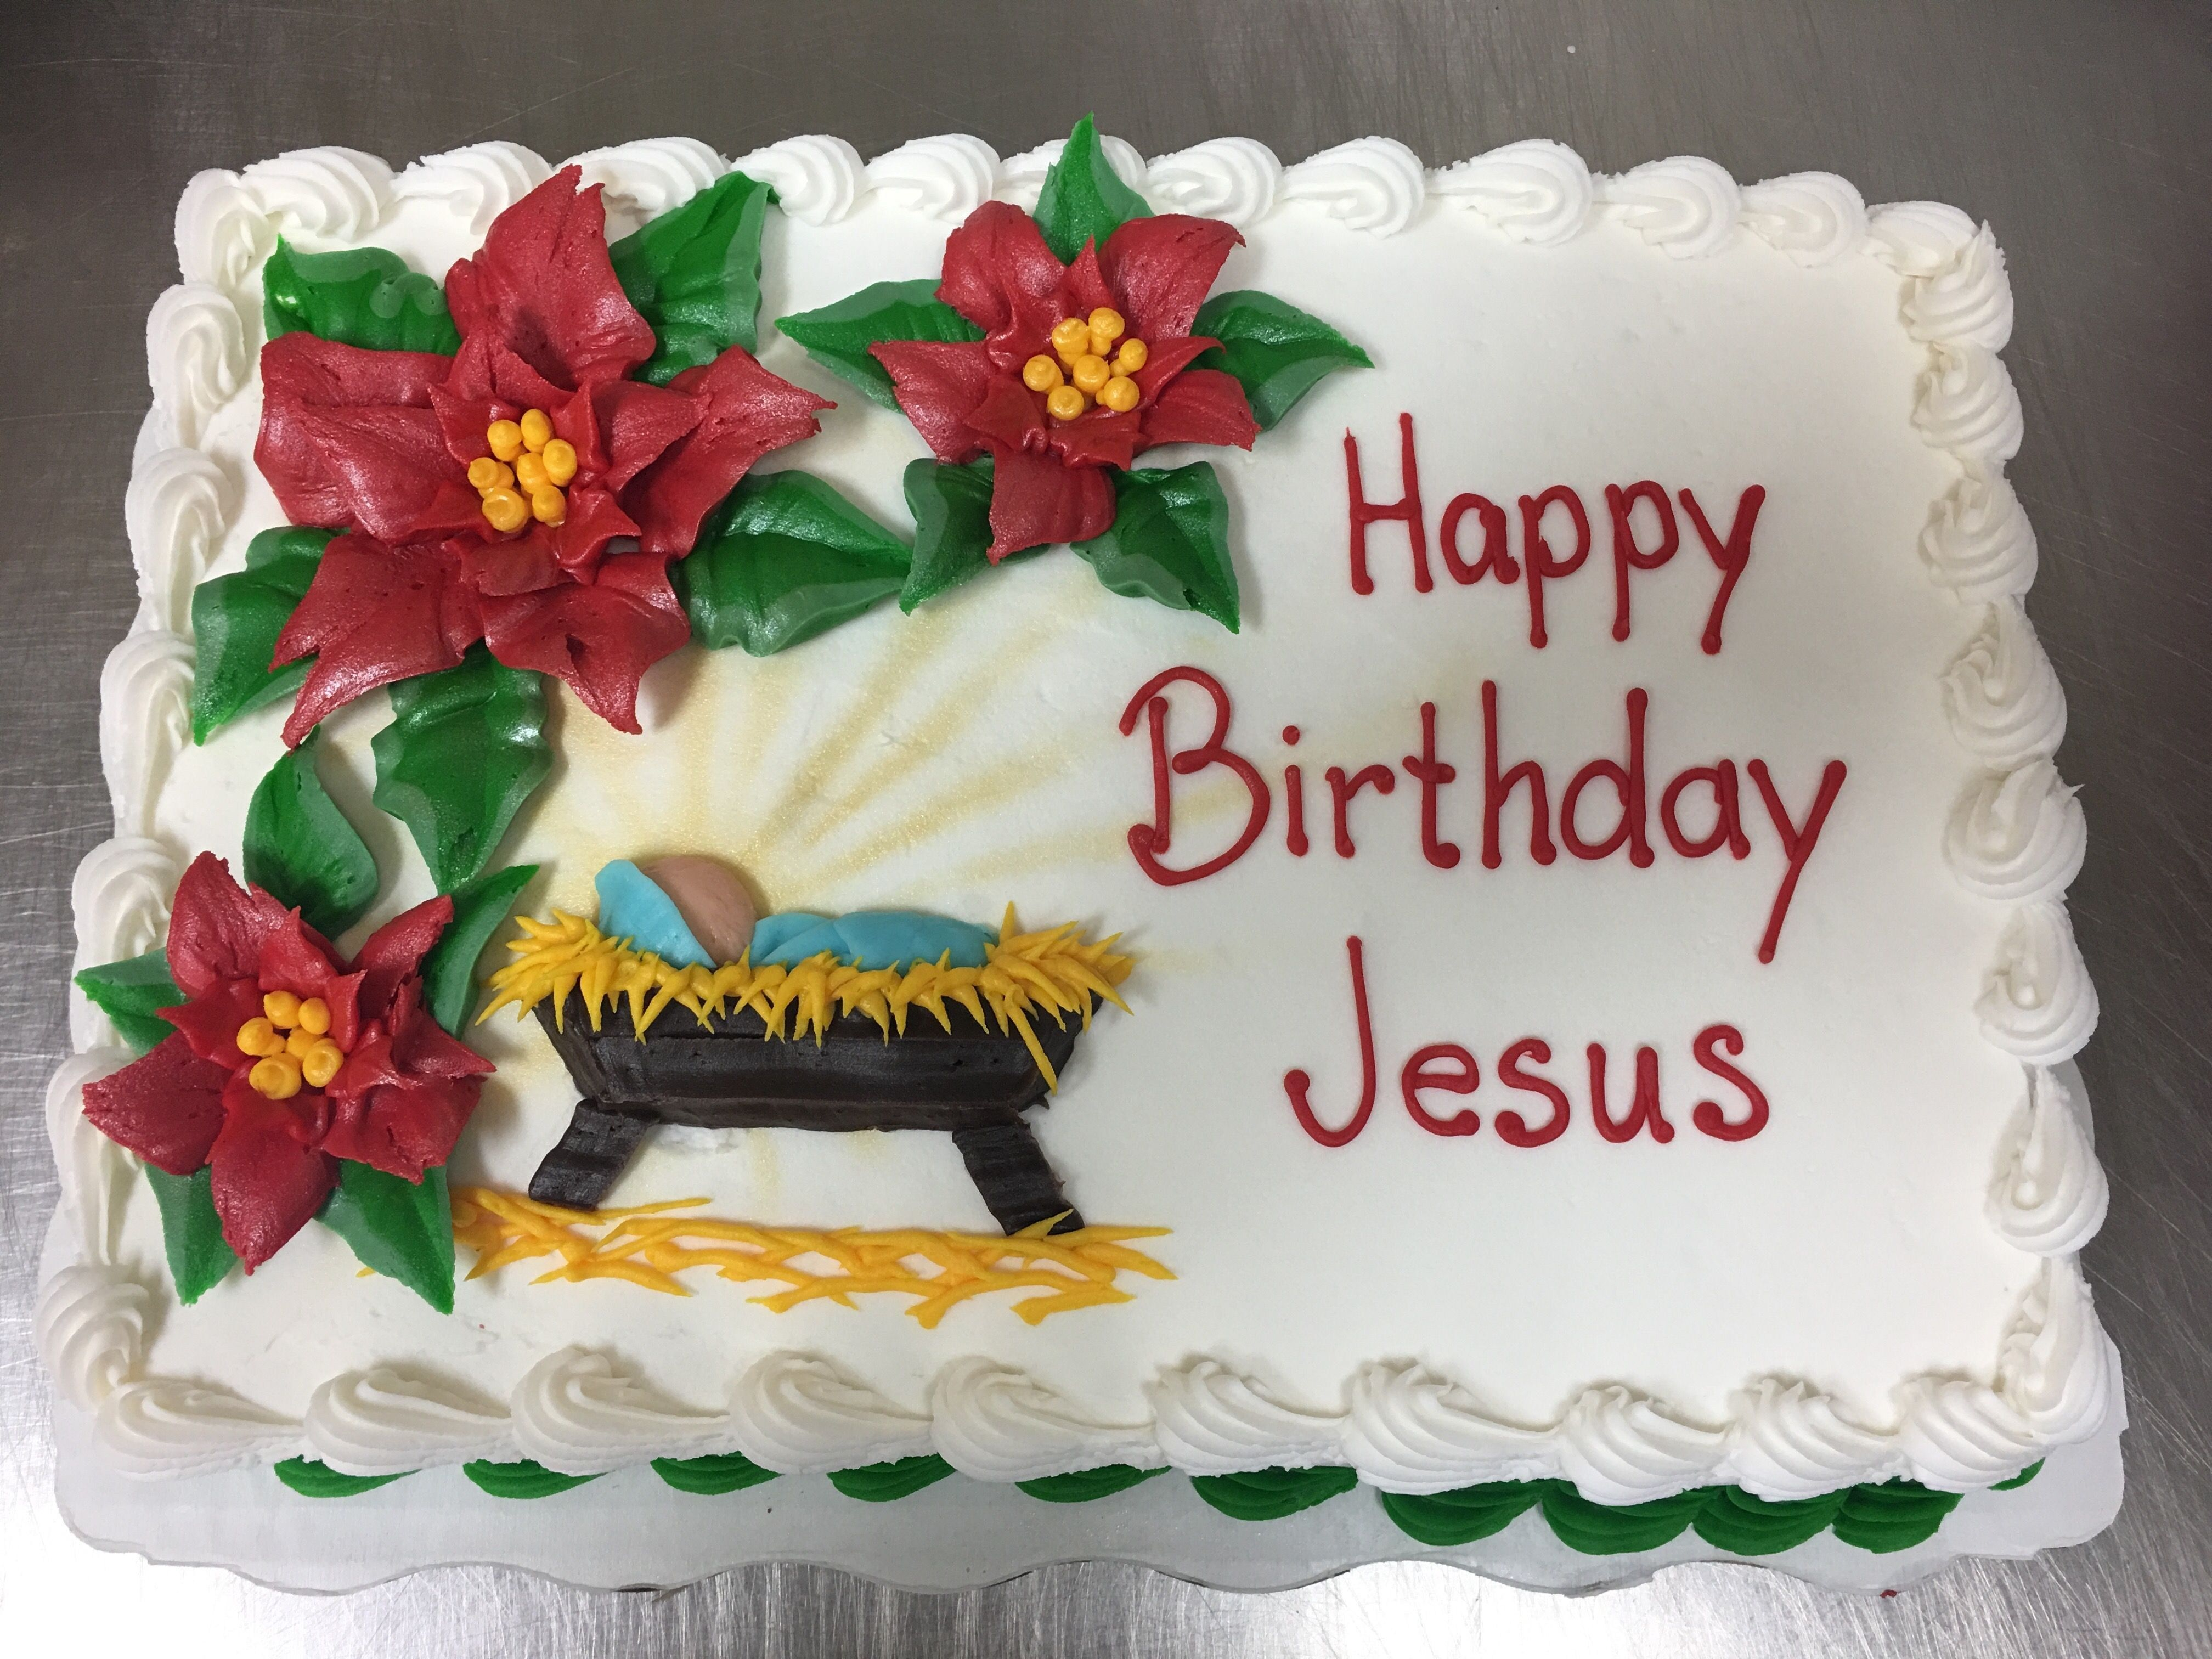 Marvelous 23 Marvelous Photo Of Happy Birthday Jesus Cake Happy Birthday Personalised Birthday Cards Veneteletsinfo